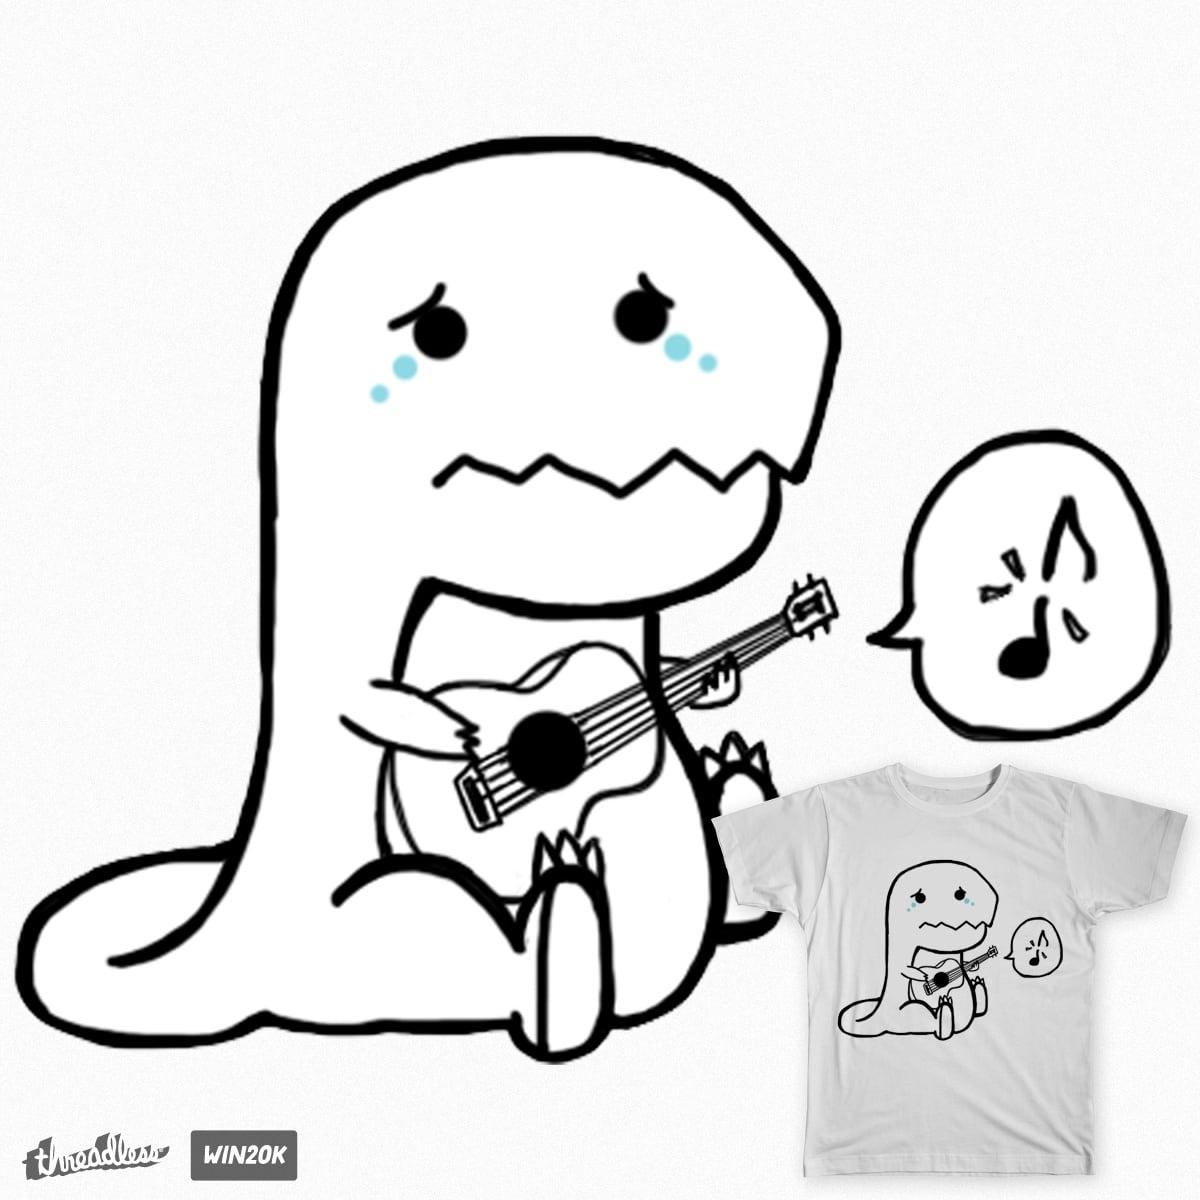 The Dinosaur Who Can't Play The Guitar by holkers on Threadless